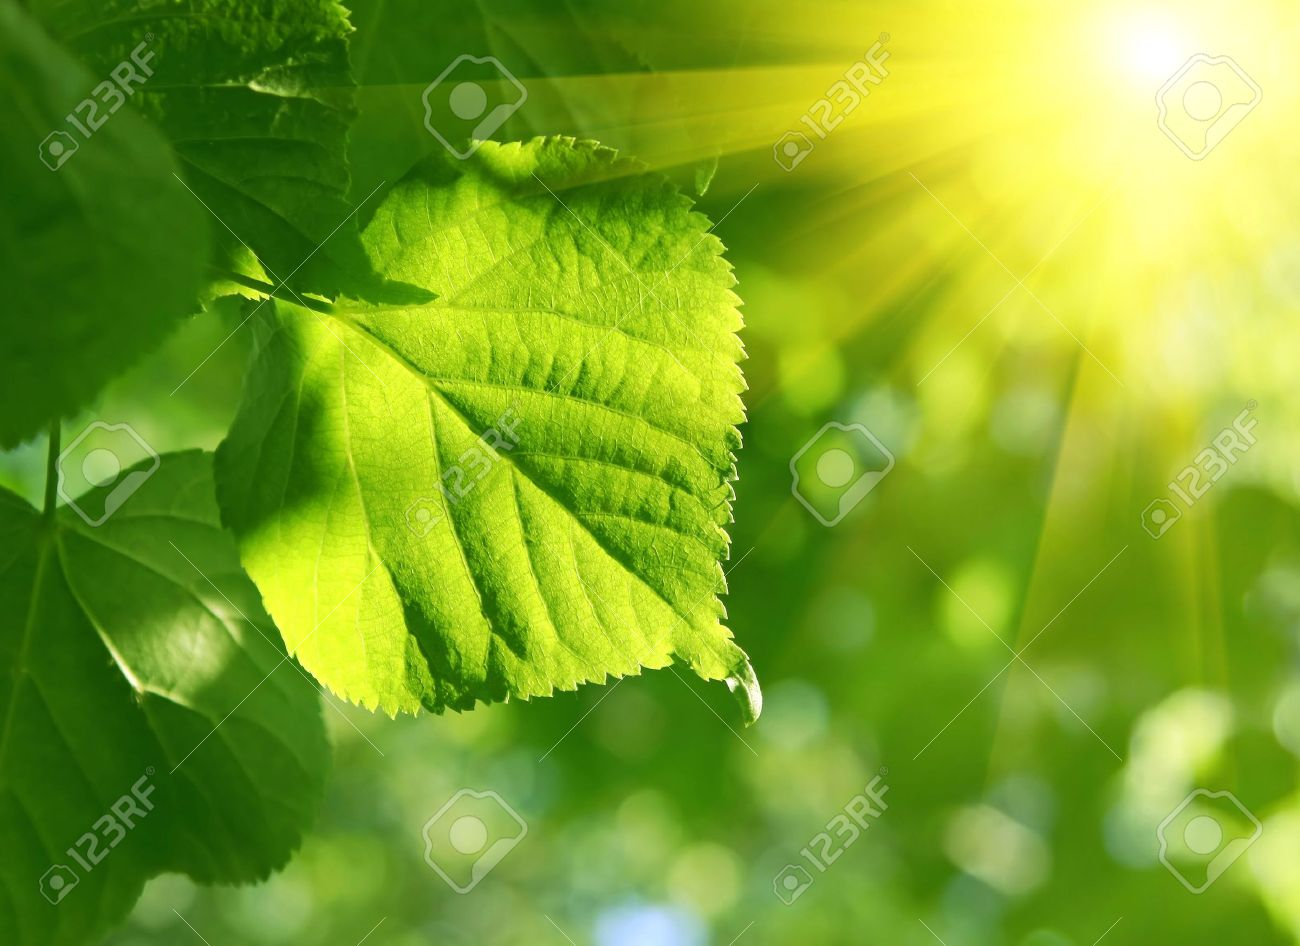 fresh green leaf of linden tree and sun beams - 7937695